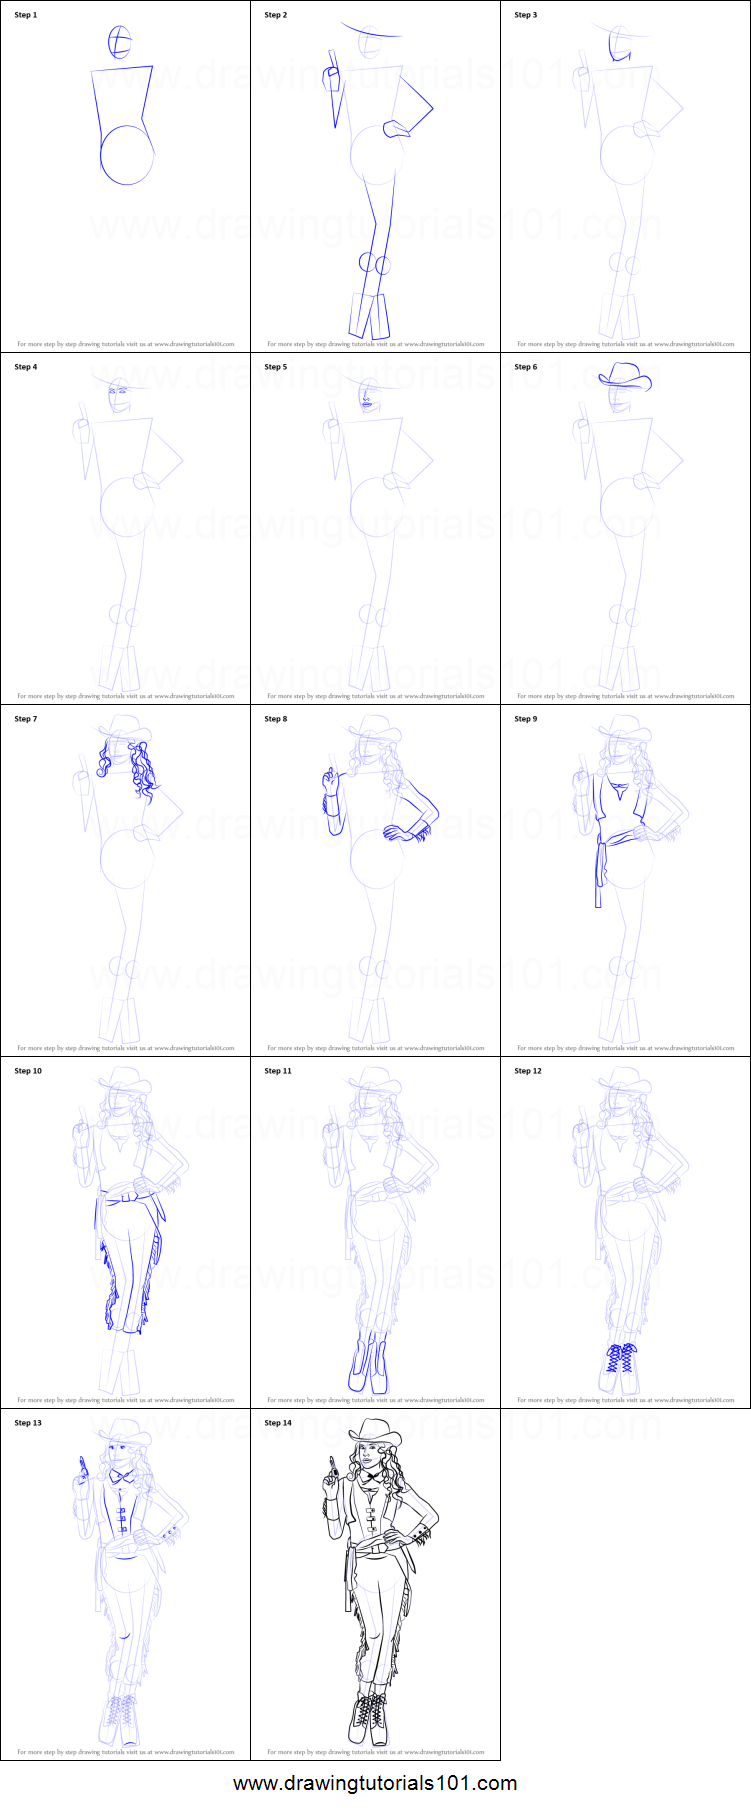 how to draw a cowgirl printable step by step drawing sheet drawingtutorials101com